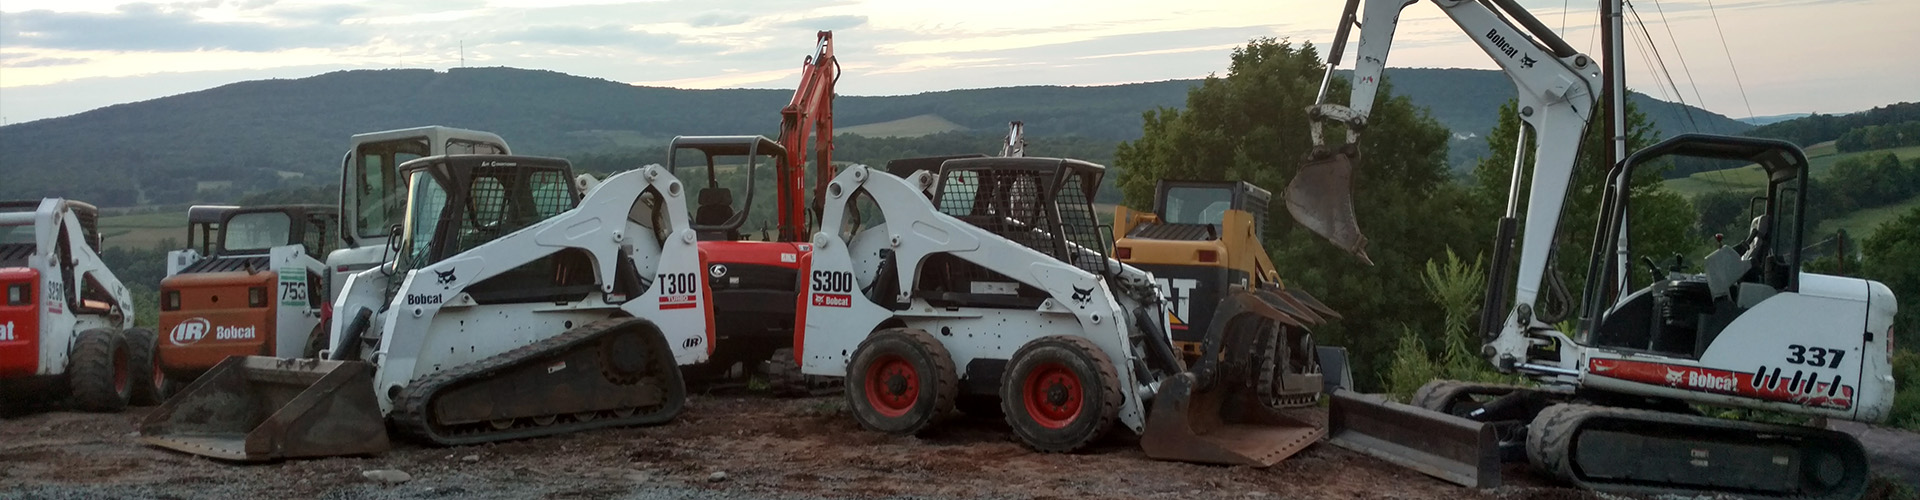 Used Bobcat, CAT Equipment For Sale